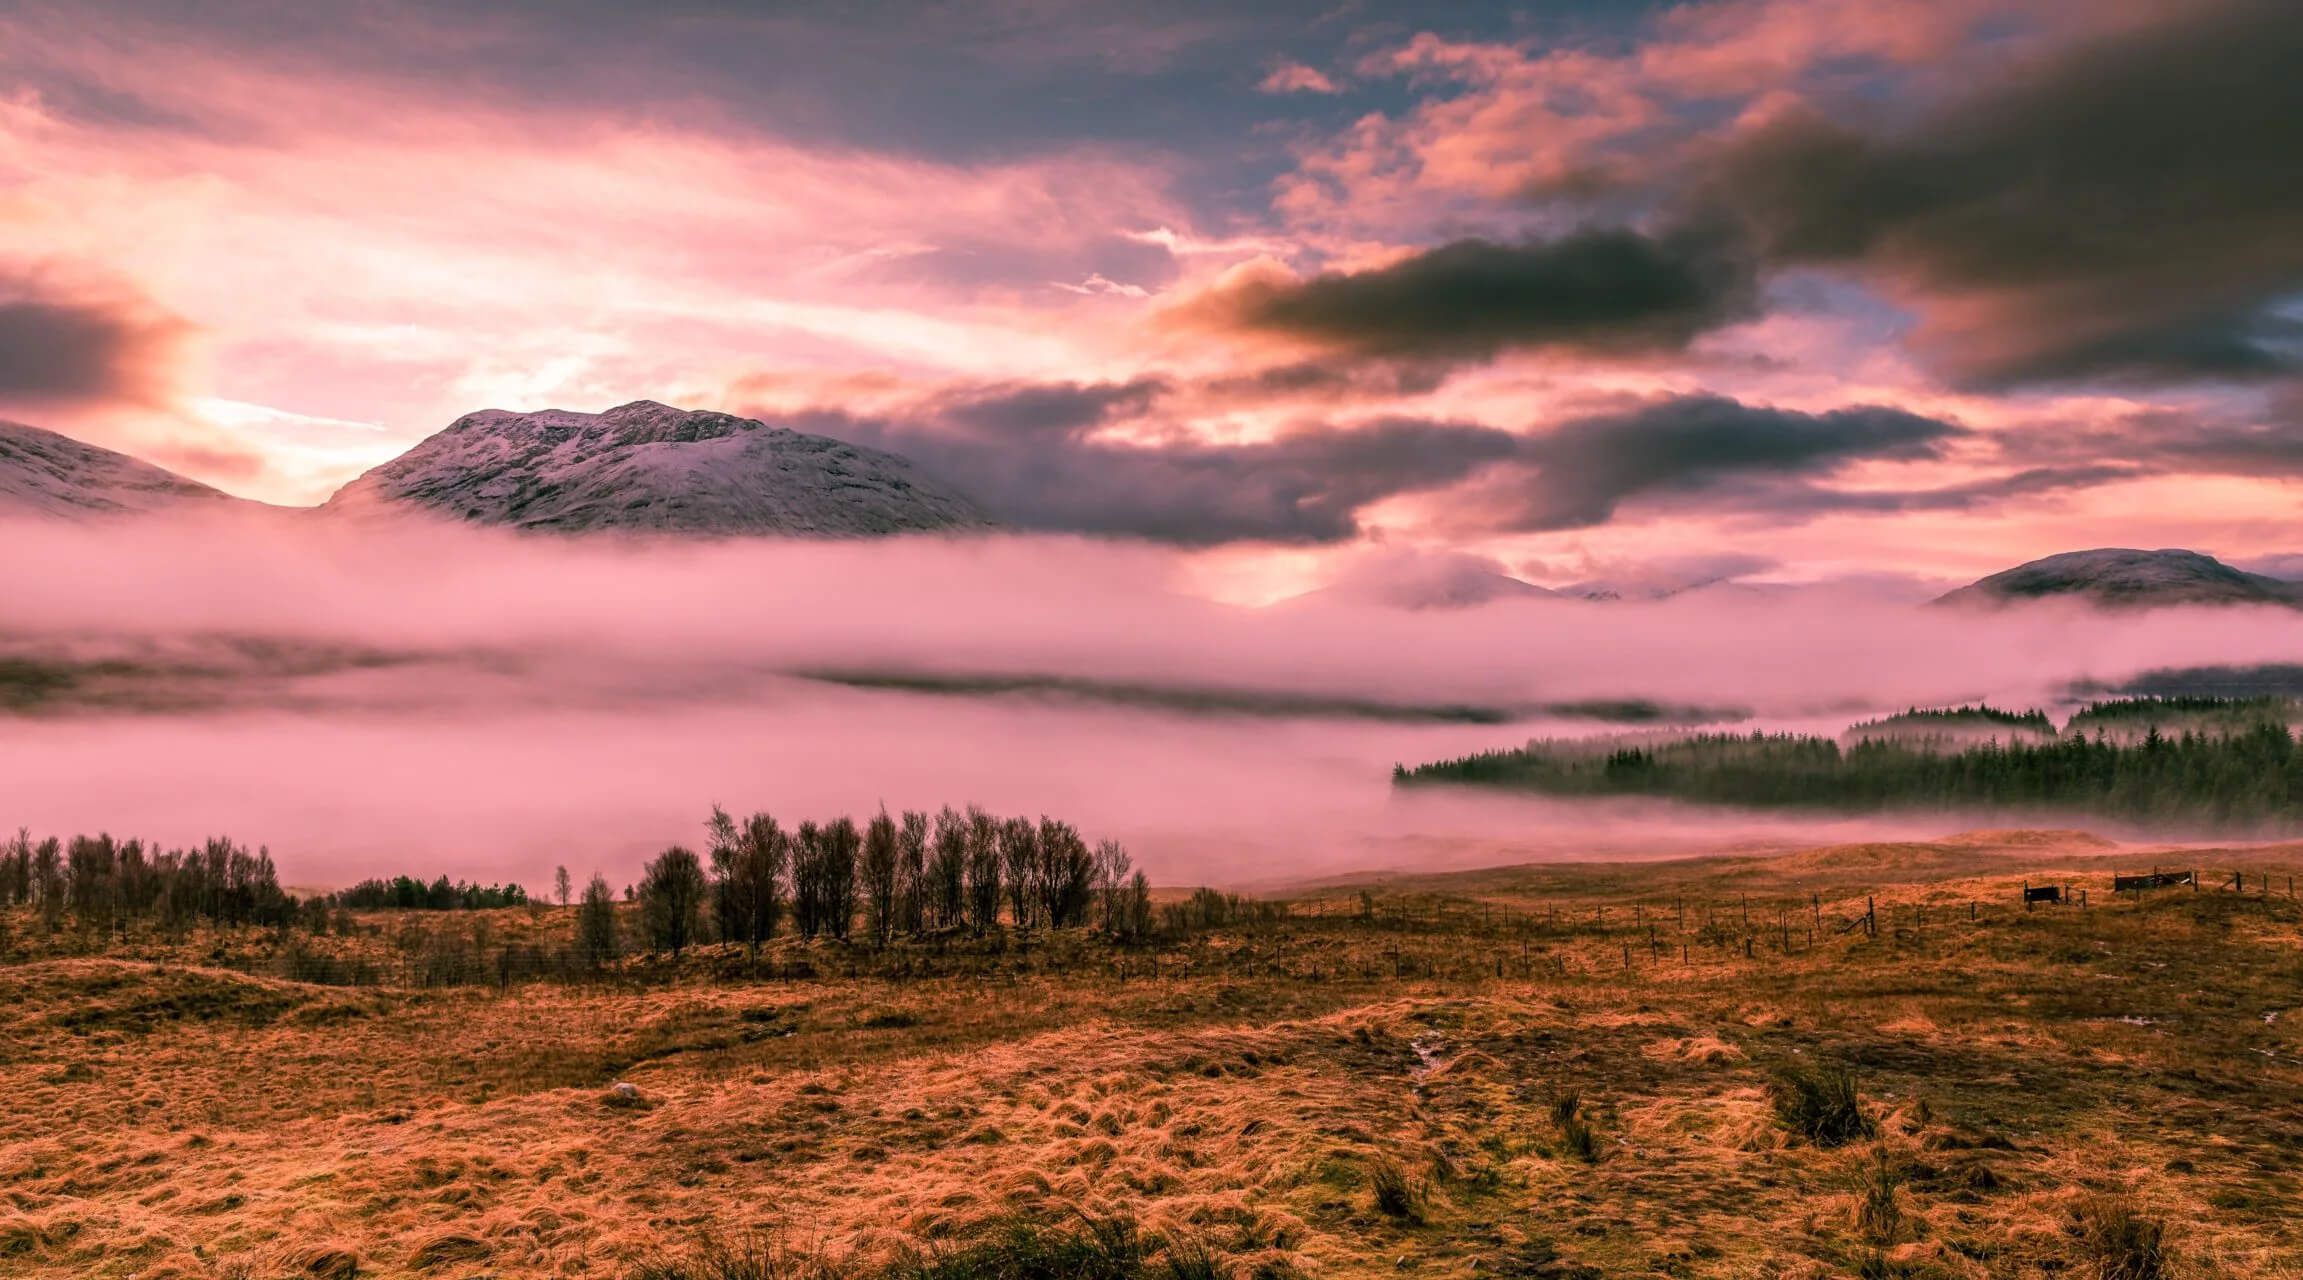 Pink Clouds in Front of Mountain